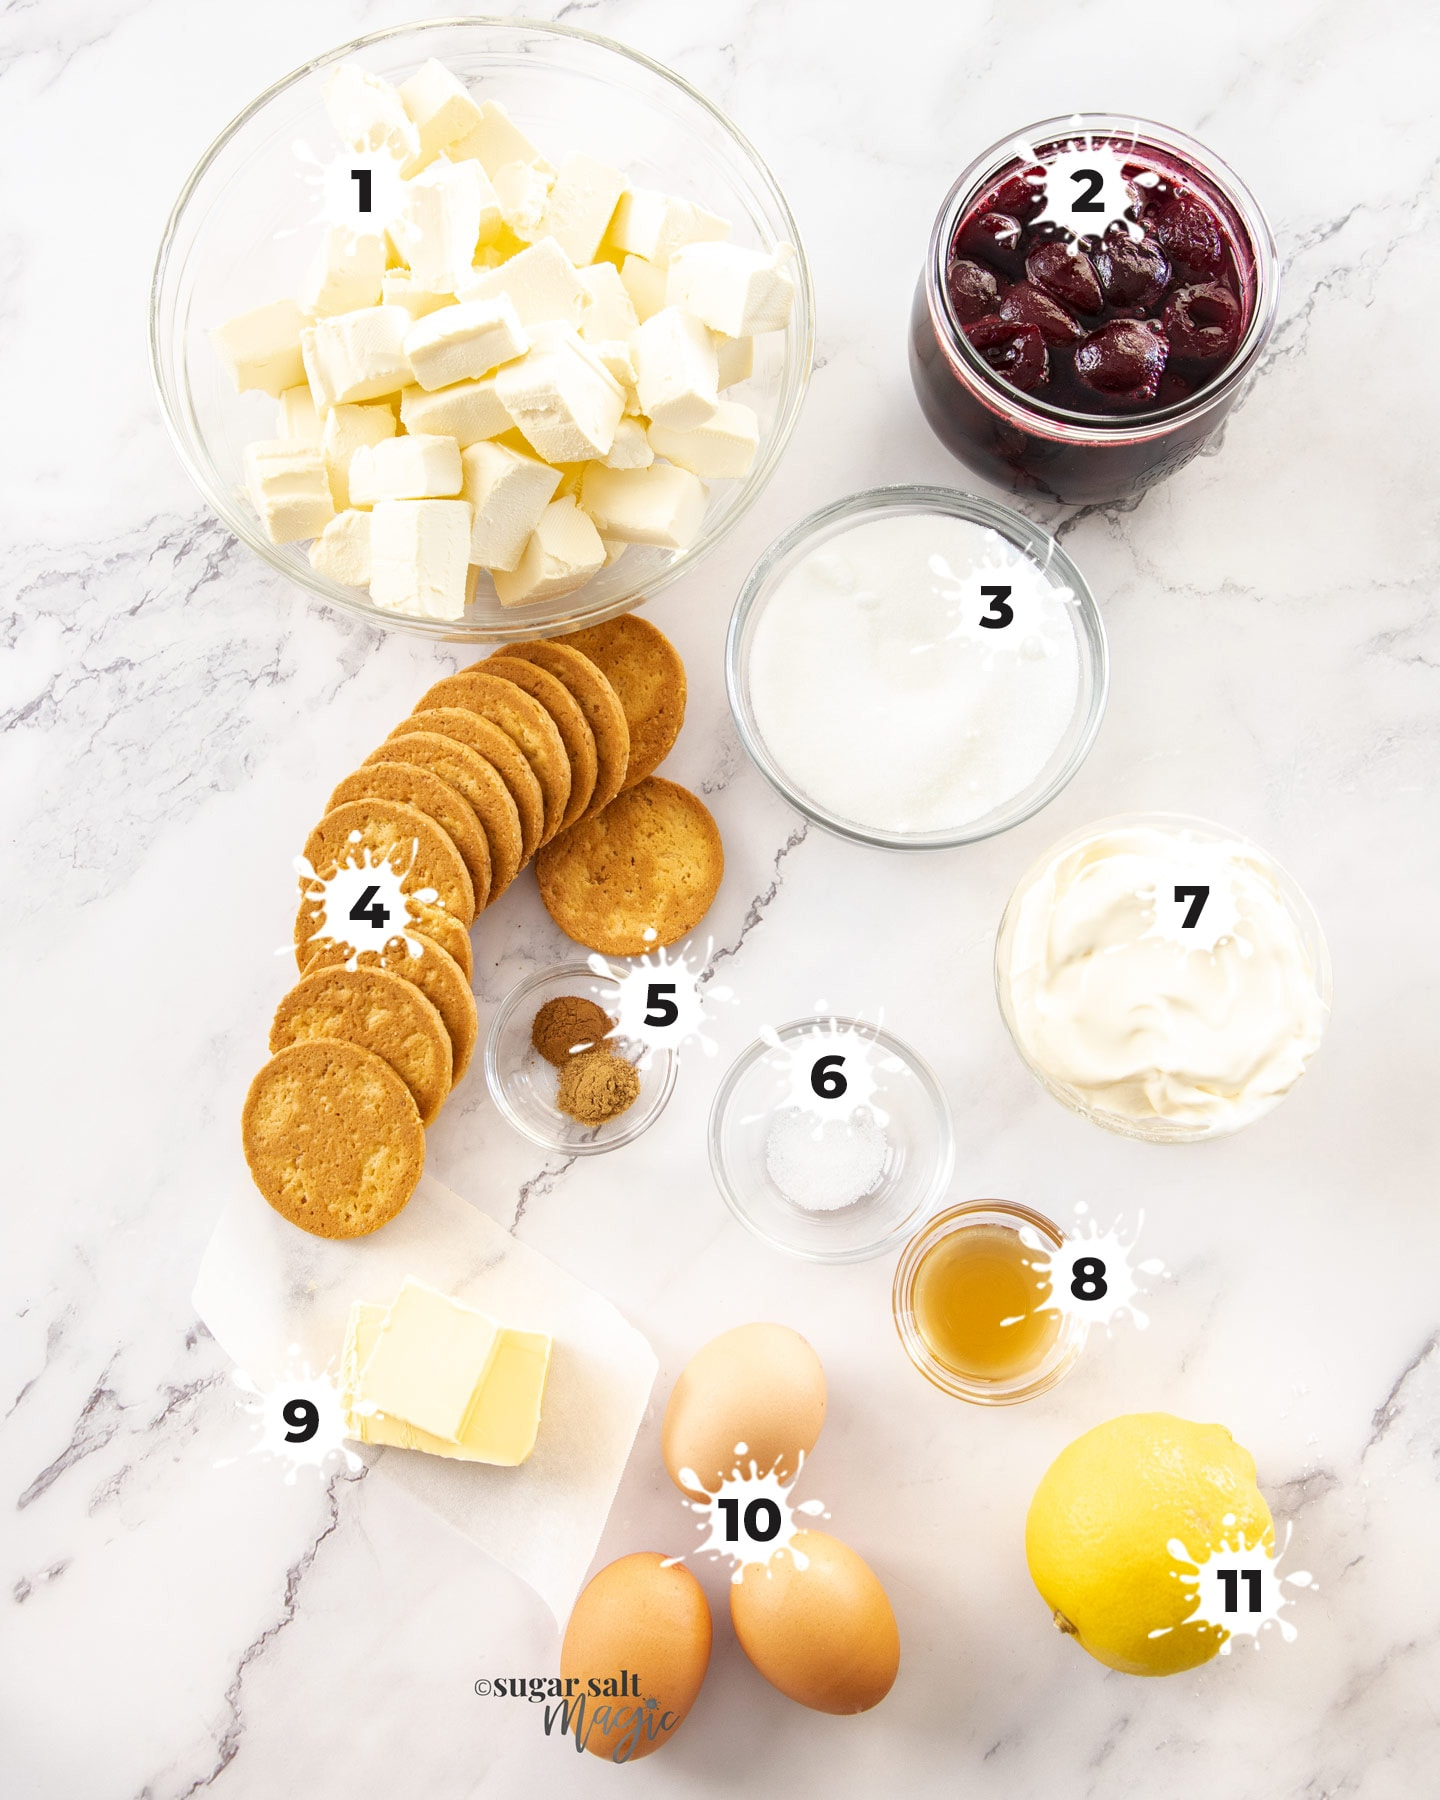 Ingredients for baked cherry cheesecake on a marble surface